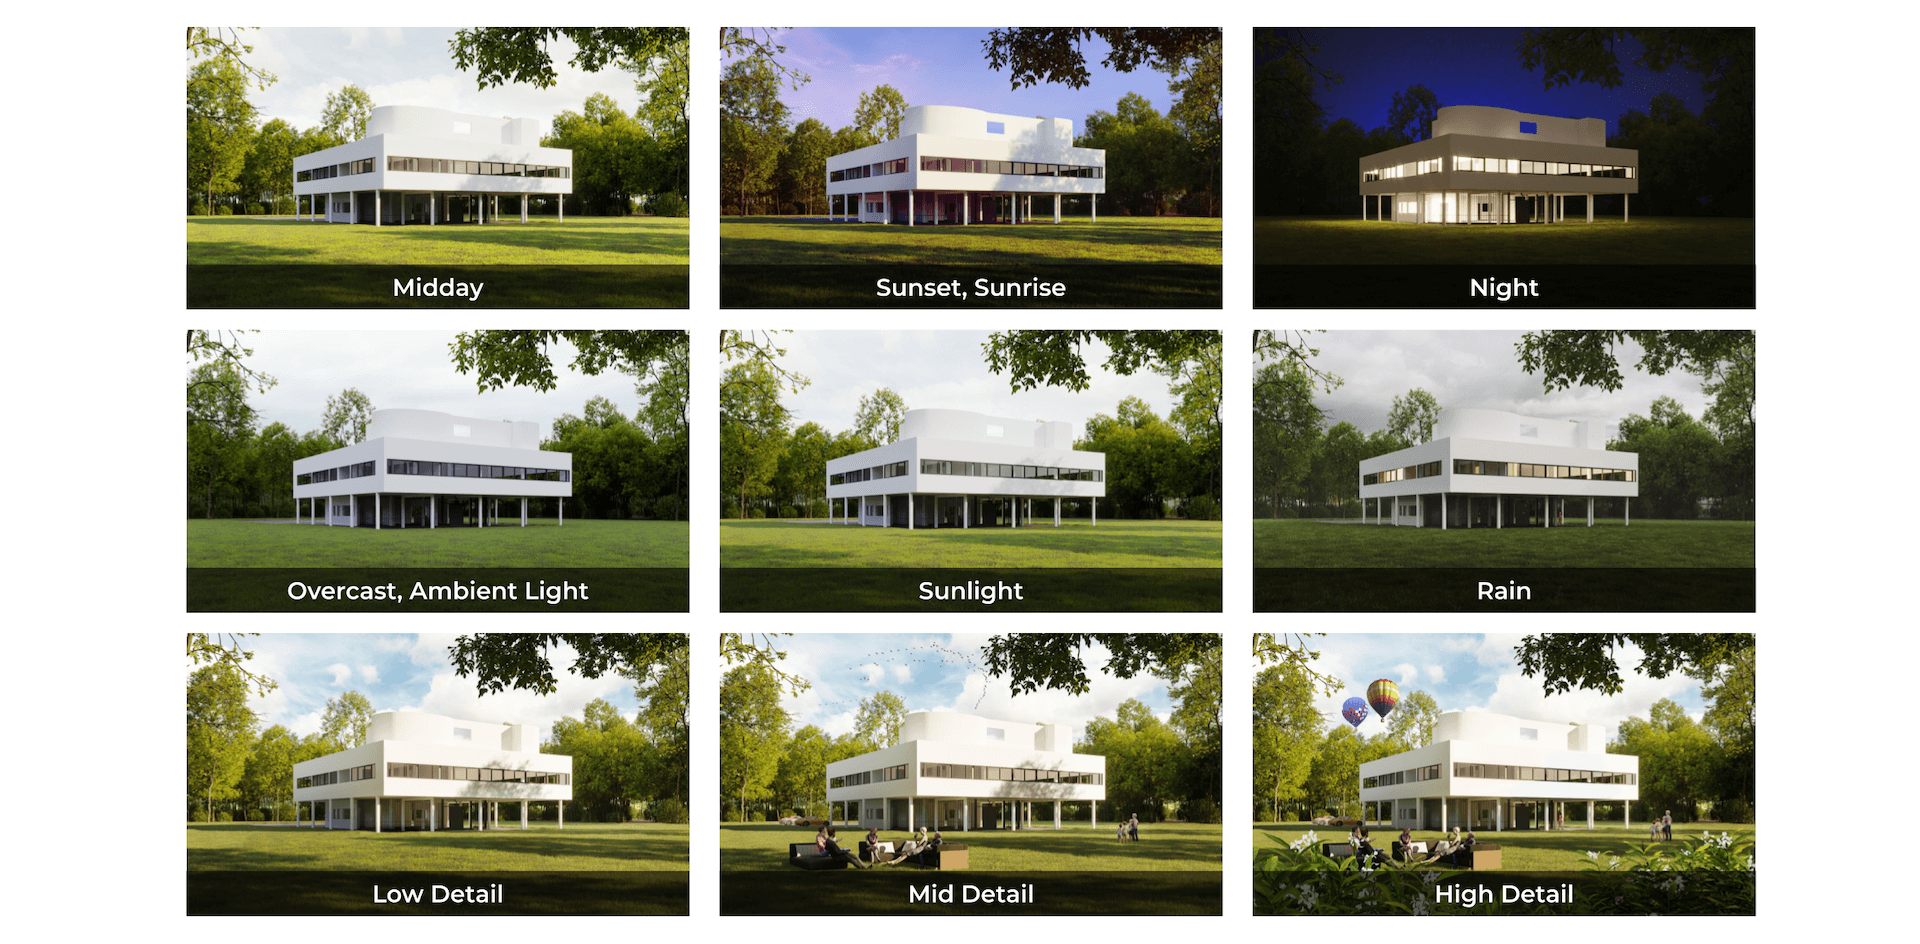 Exterior Lighting and Atmosphere Options